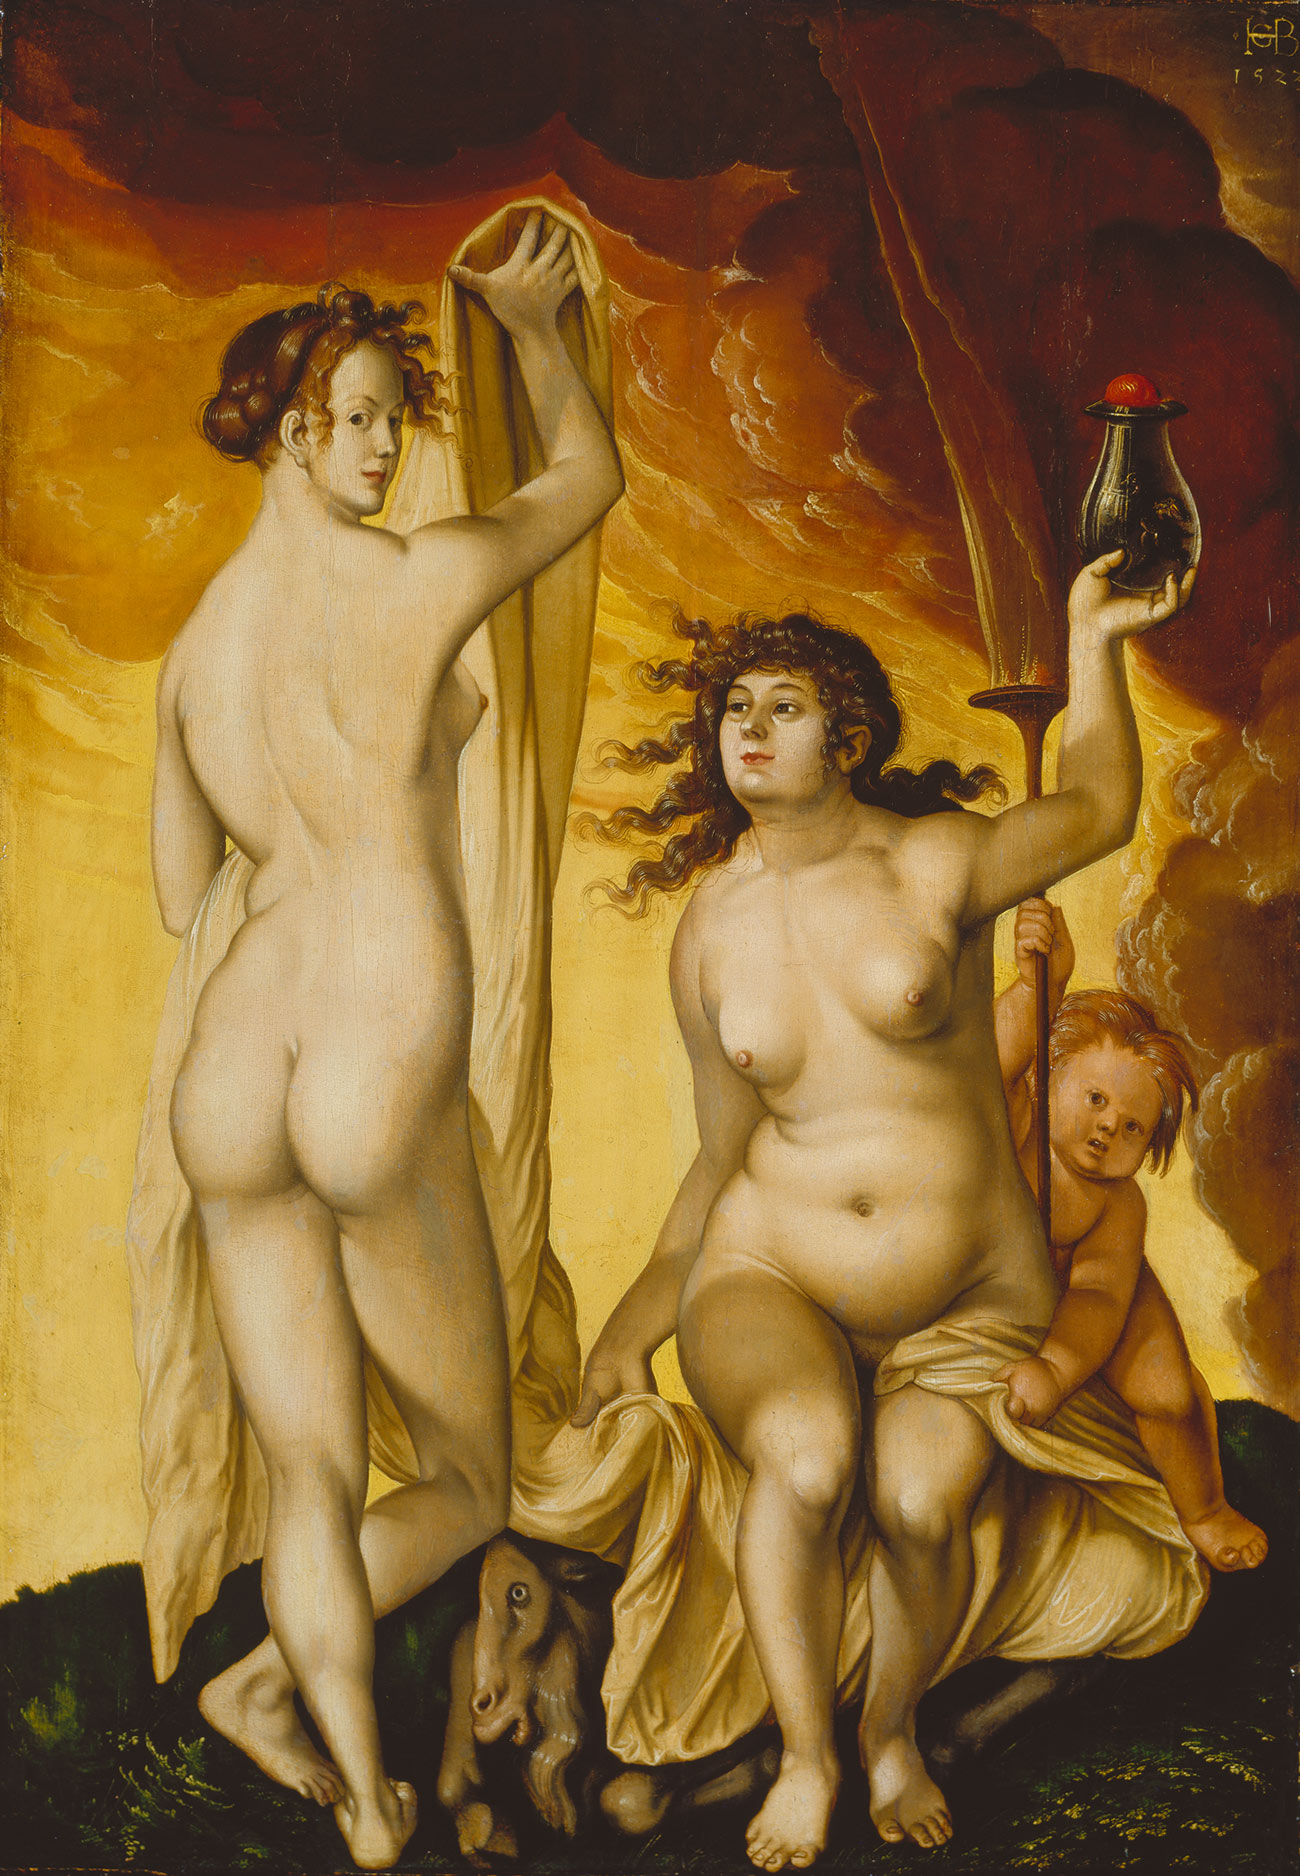 Two nude women stand in front of a roaring fire, the one on the left looks defiantly at the viewer.